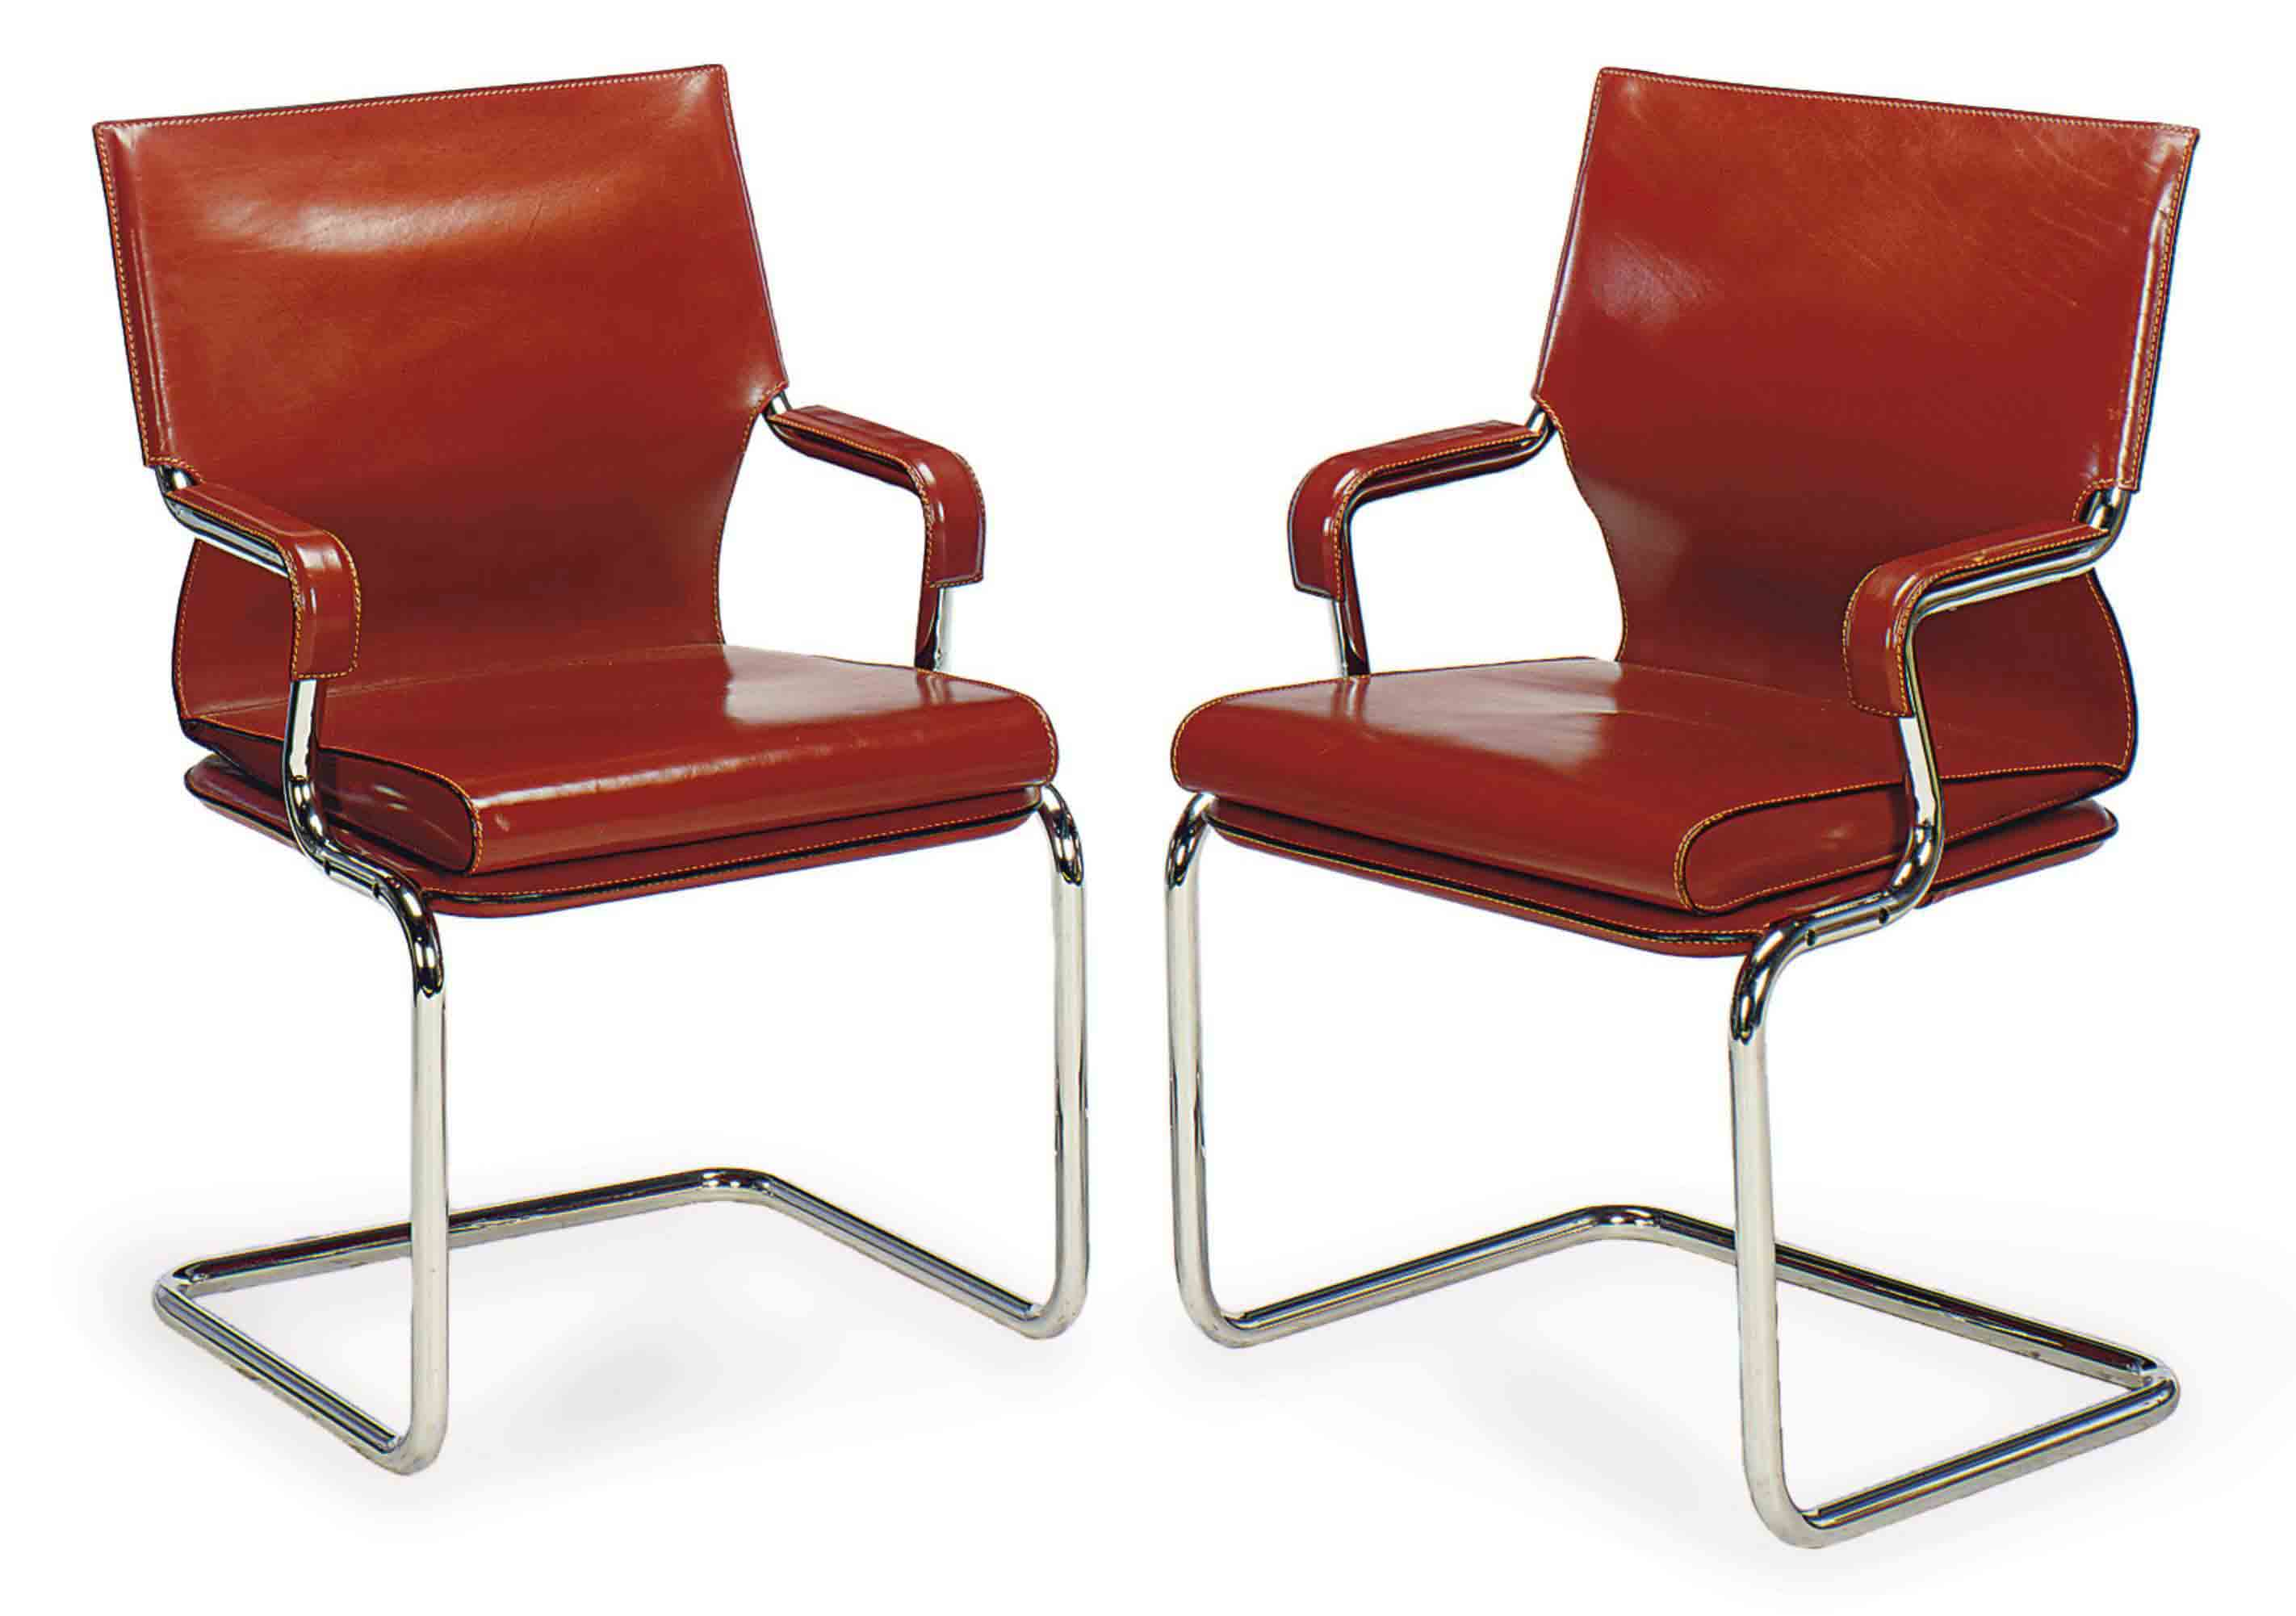 A PAIR CONTEMPORARY CHROMED-METAL AND LEATHER ARMCHAIRS,